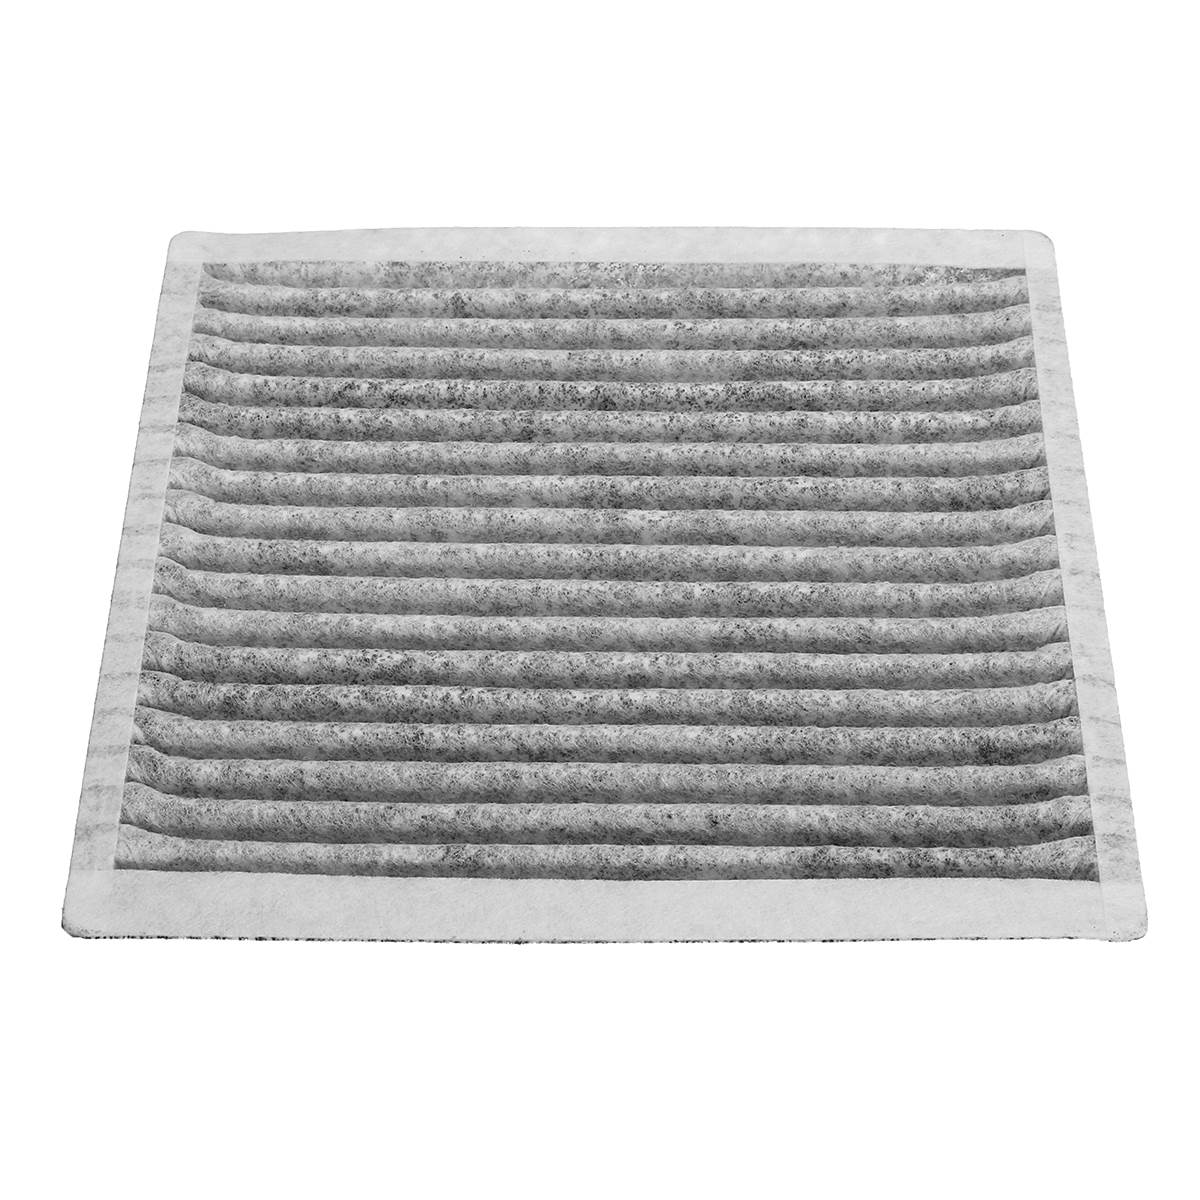 Carbon cabin a c air filter ac for mazda cx 9 for ford